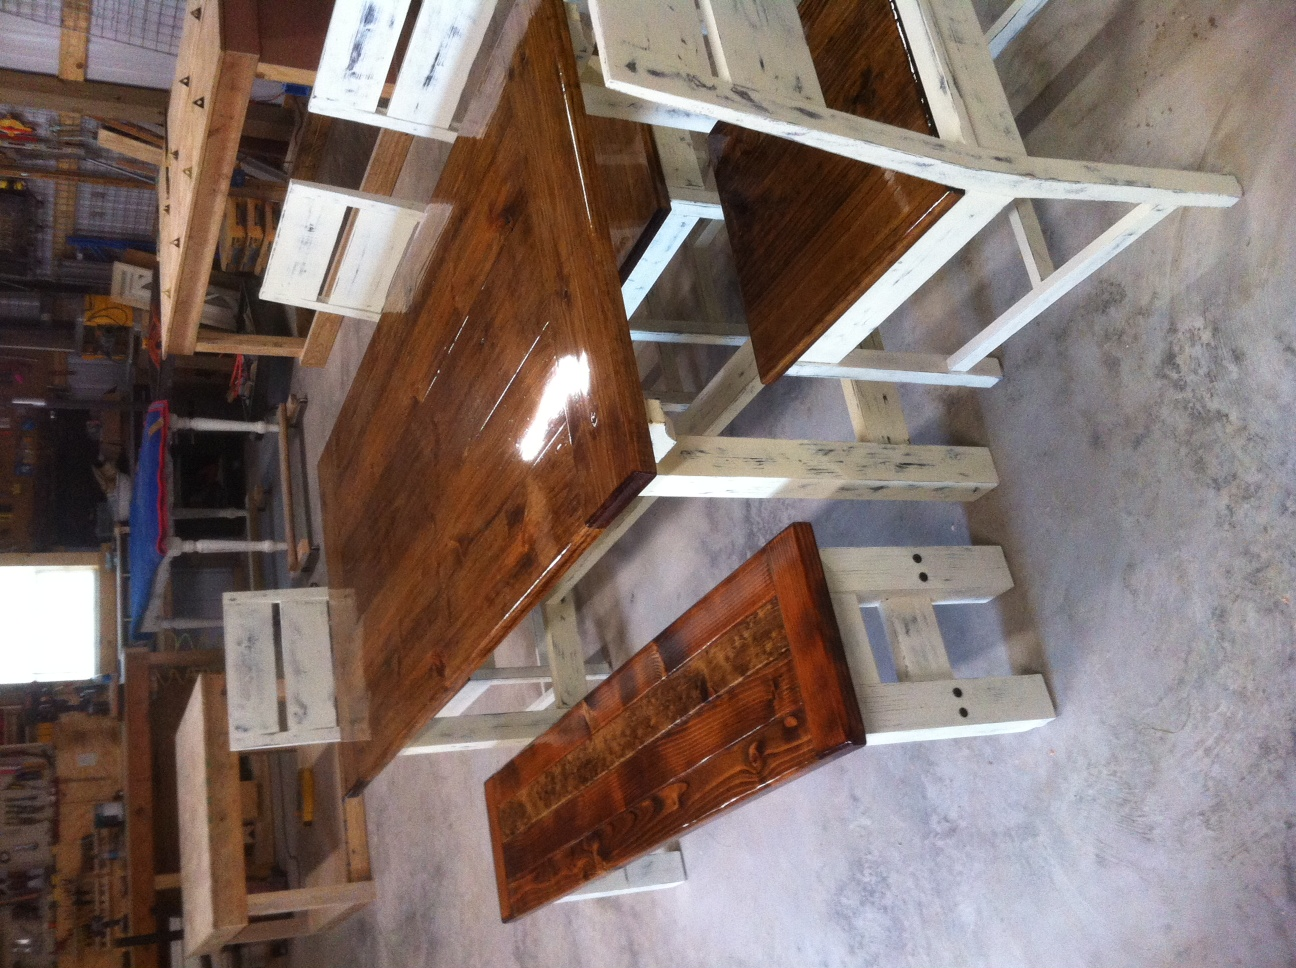 Ana white farm table bench and chairs diy projects for Ana white table bench